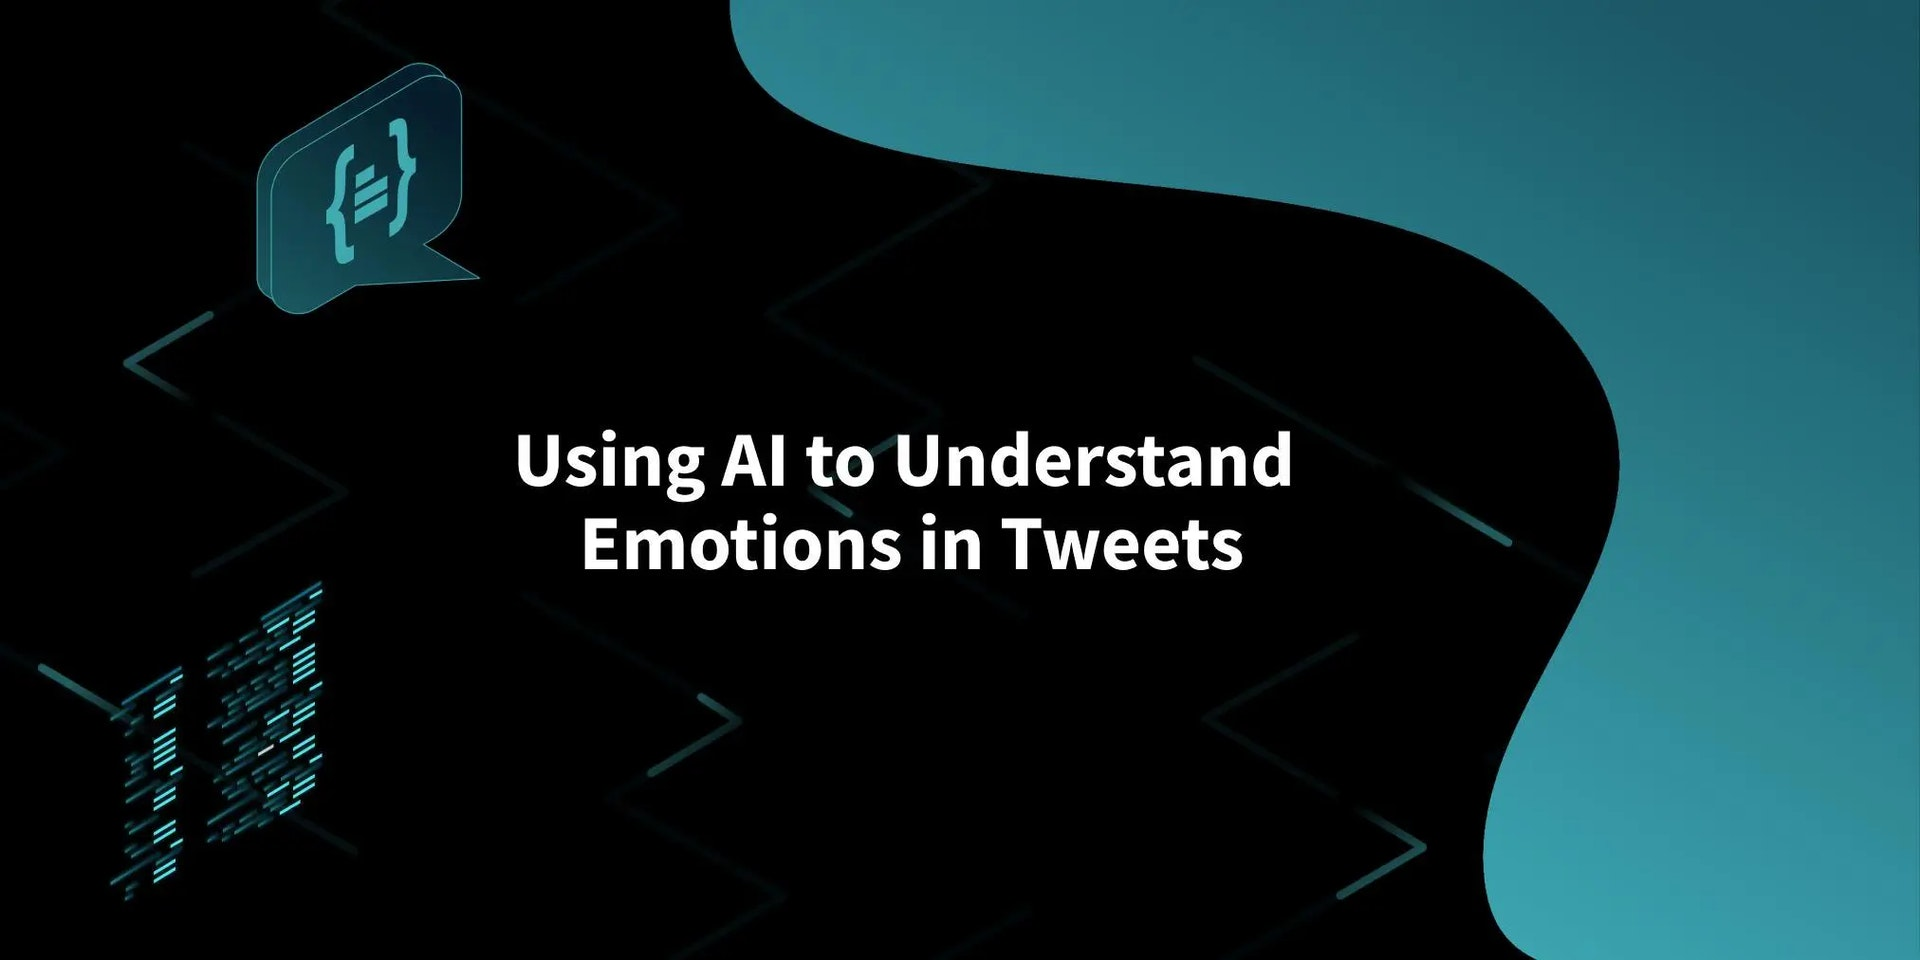 Using Artificial Intelligence to Understand Emotions in Tweets